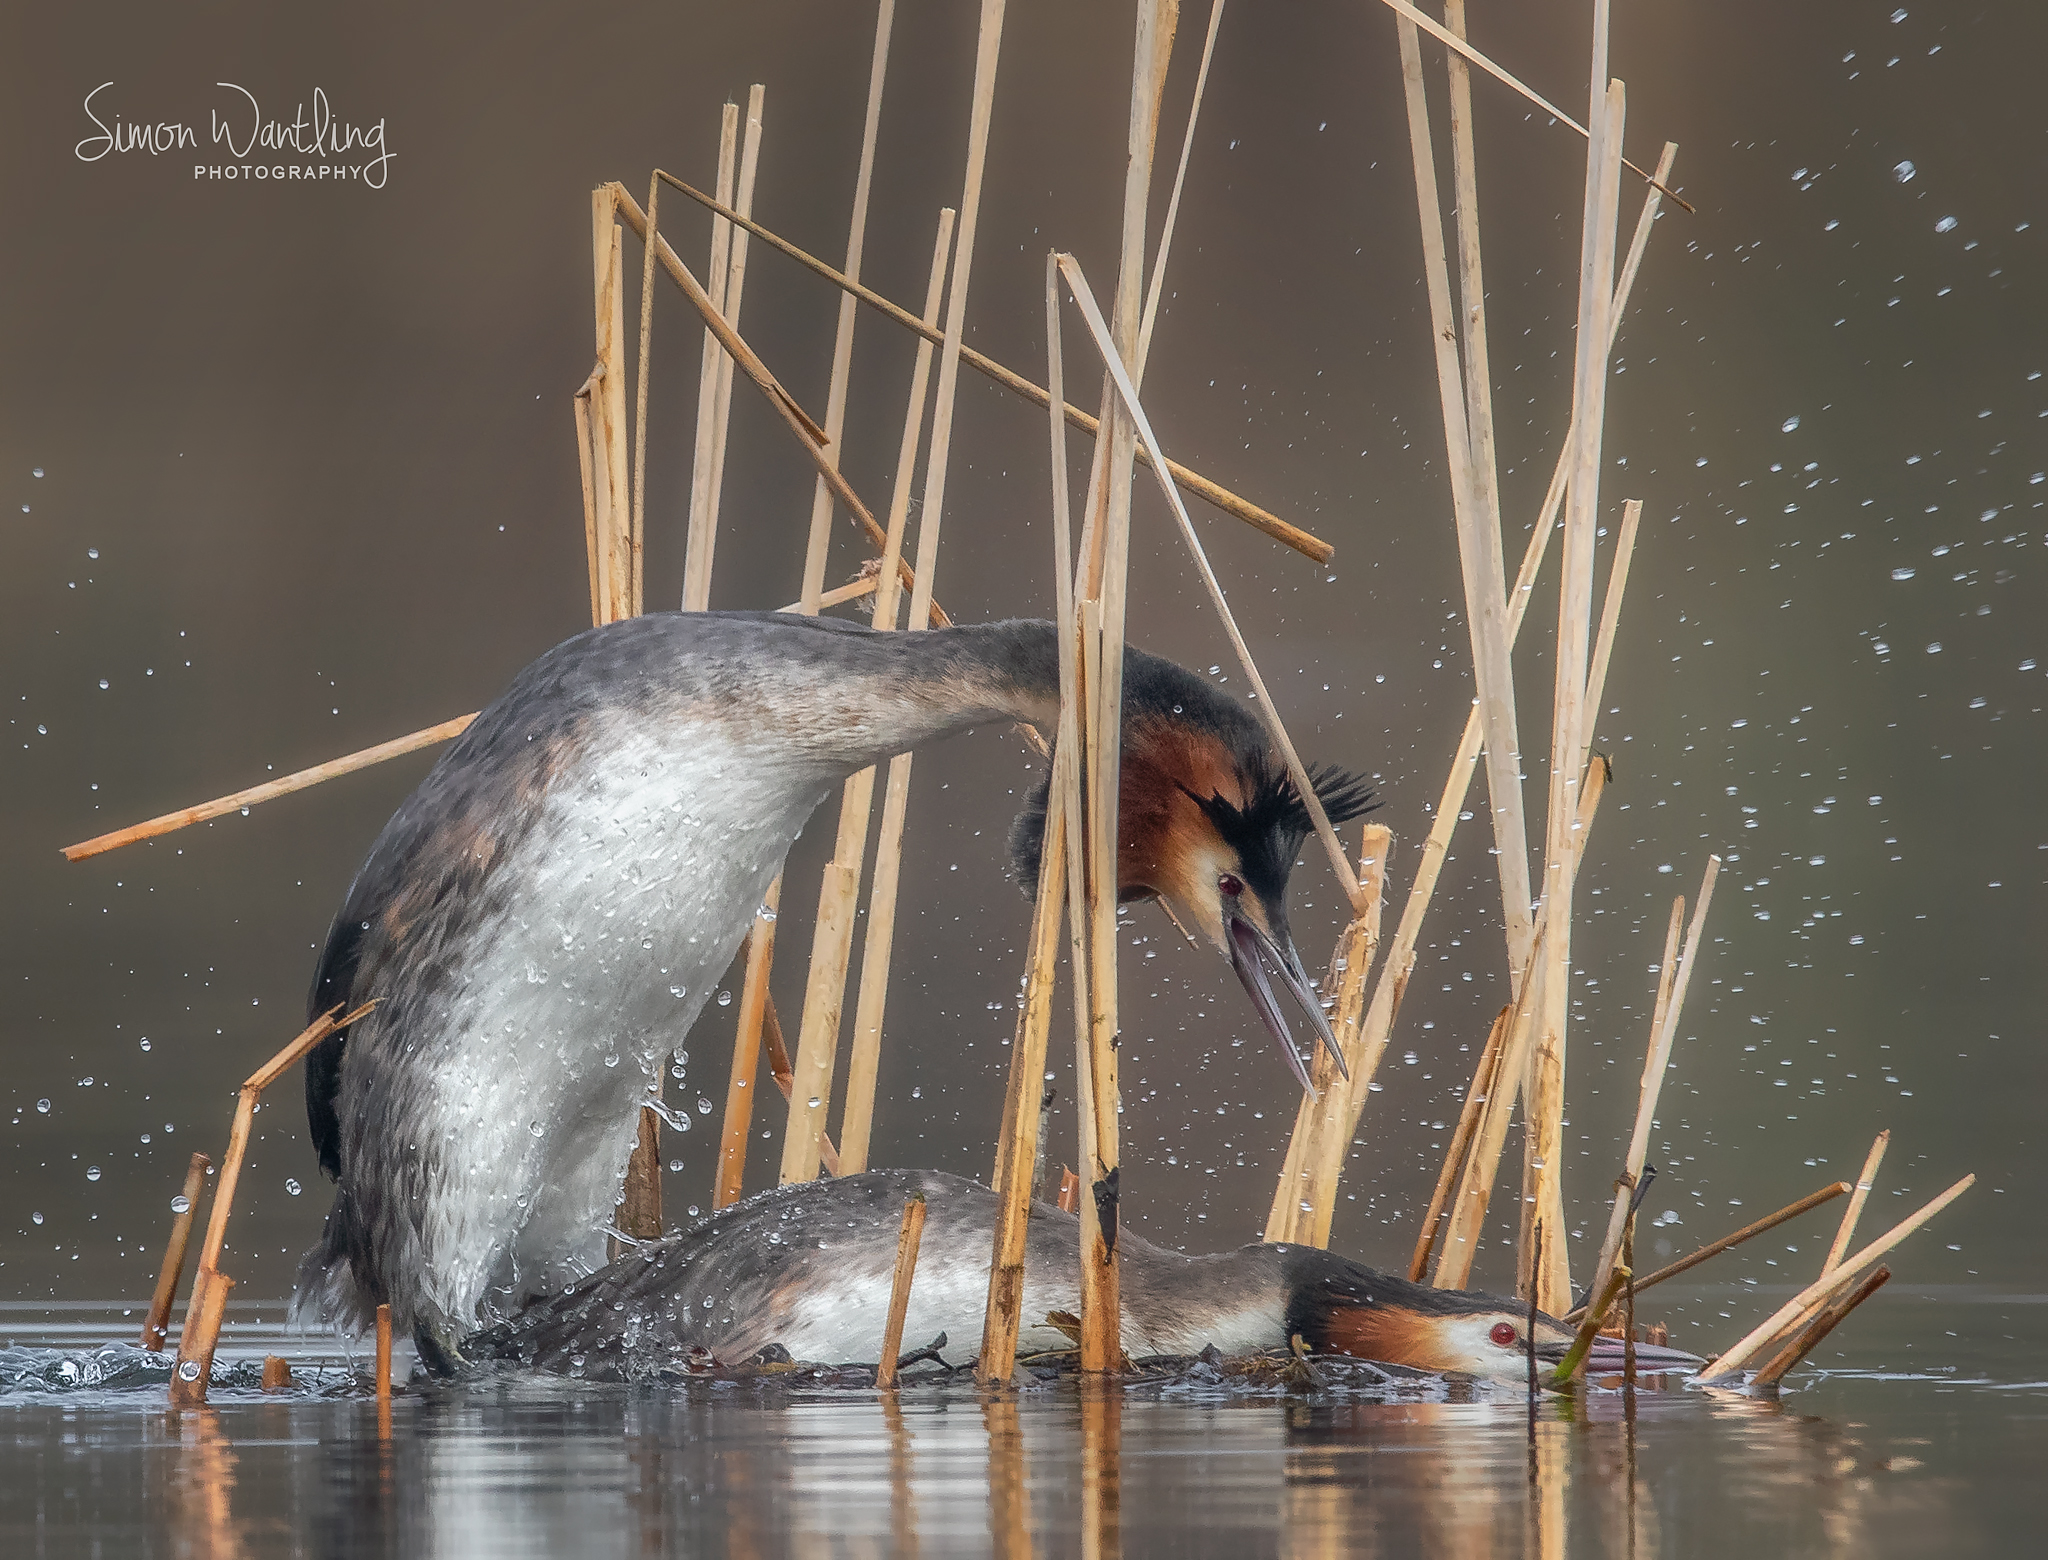 Mating Grebes